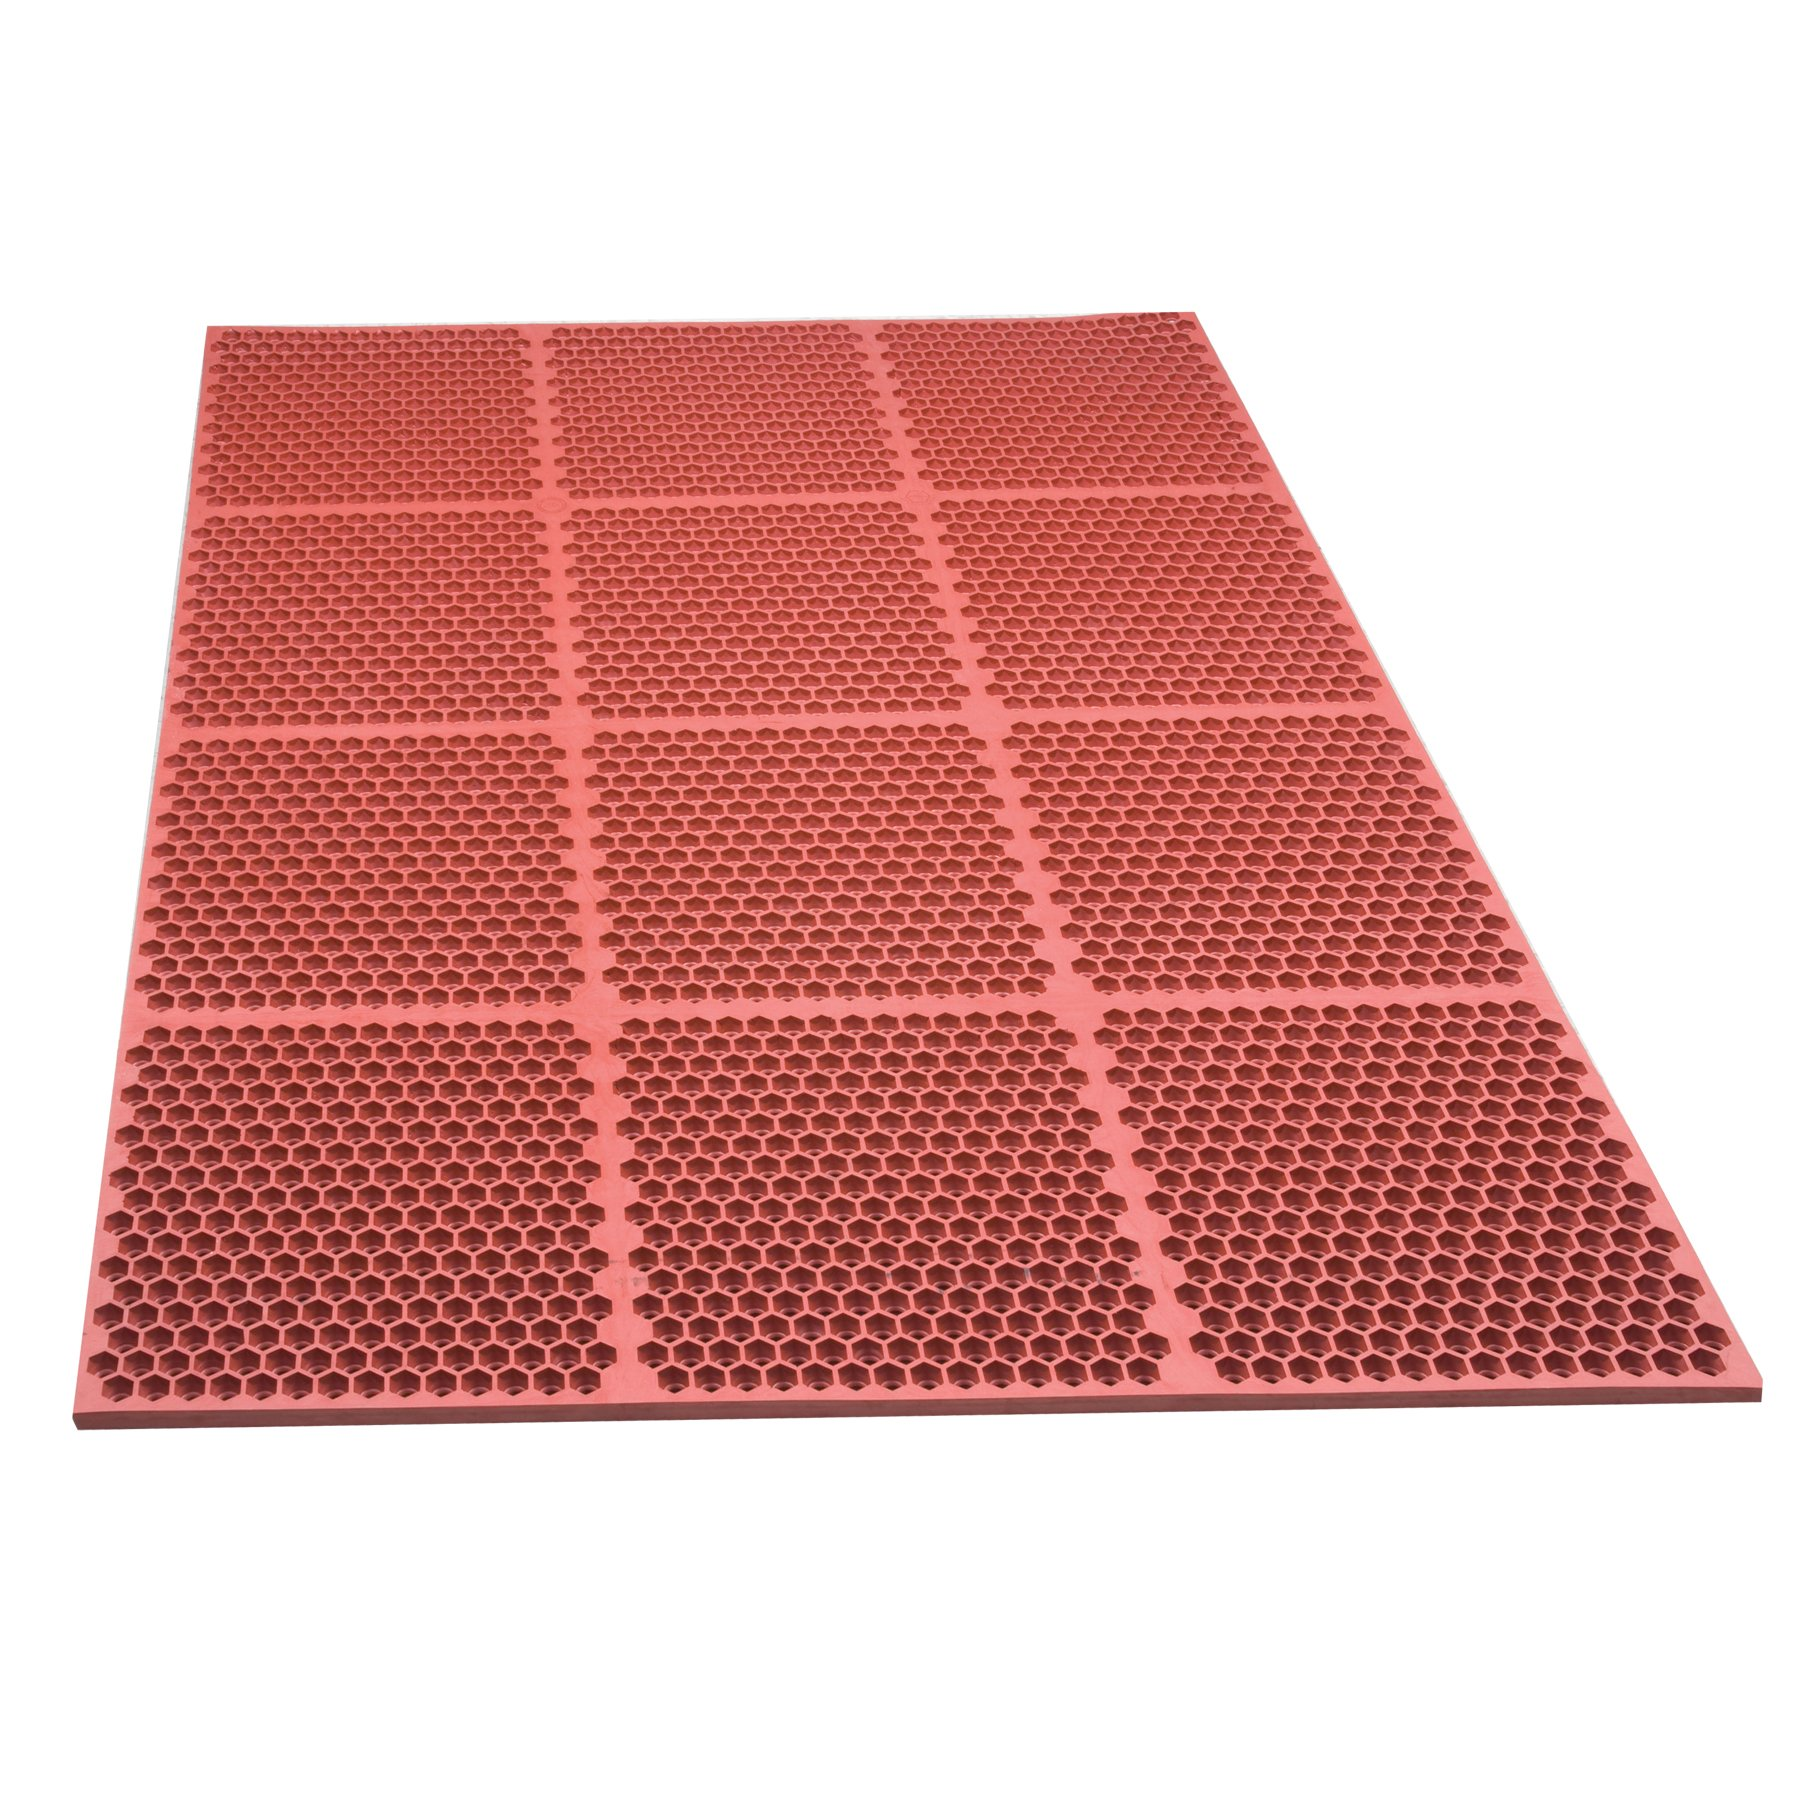 NoTrax T15 Heavy Duty Nitrile Rubber Optimat Safety/Anti-Fatigue Mat, for Wet or Greasy Areas, 3' Width x 6' Length x 1/2'' Thickness, Red